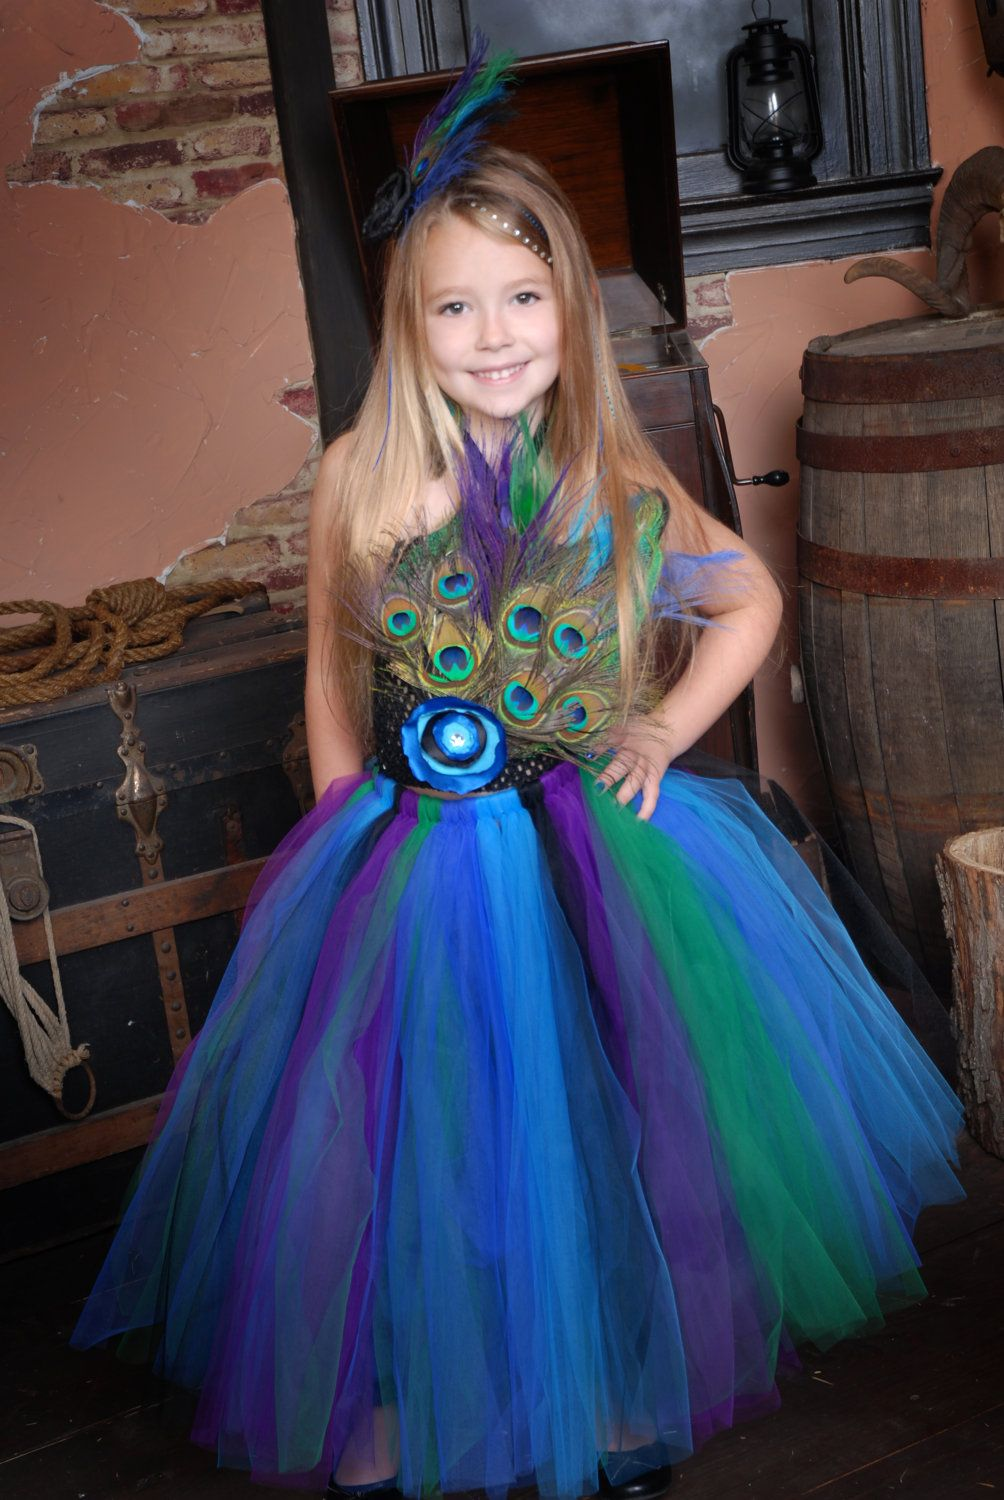 peacock princess tutu dress perfect for pageants birthday photo shoots pinterest kost m. Black Bedroom Furniture Sets. Home Design Ideas